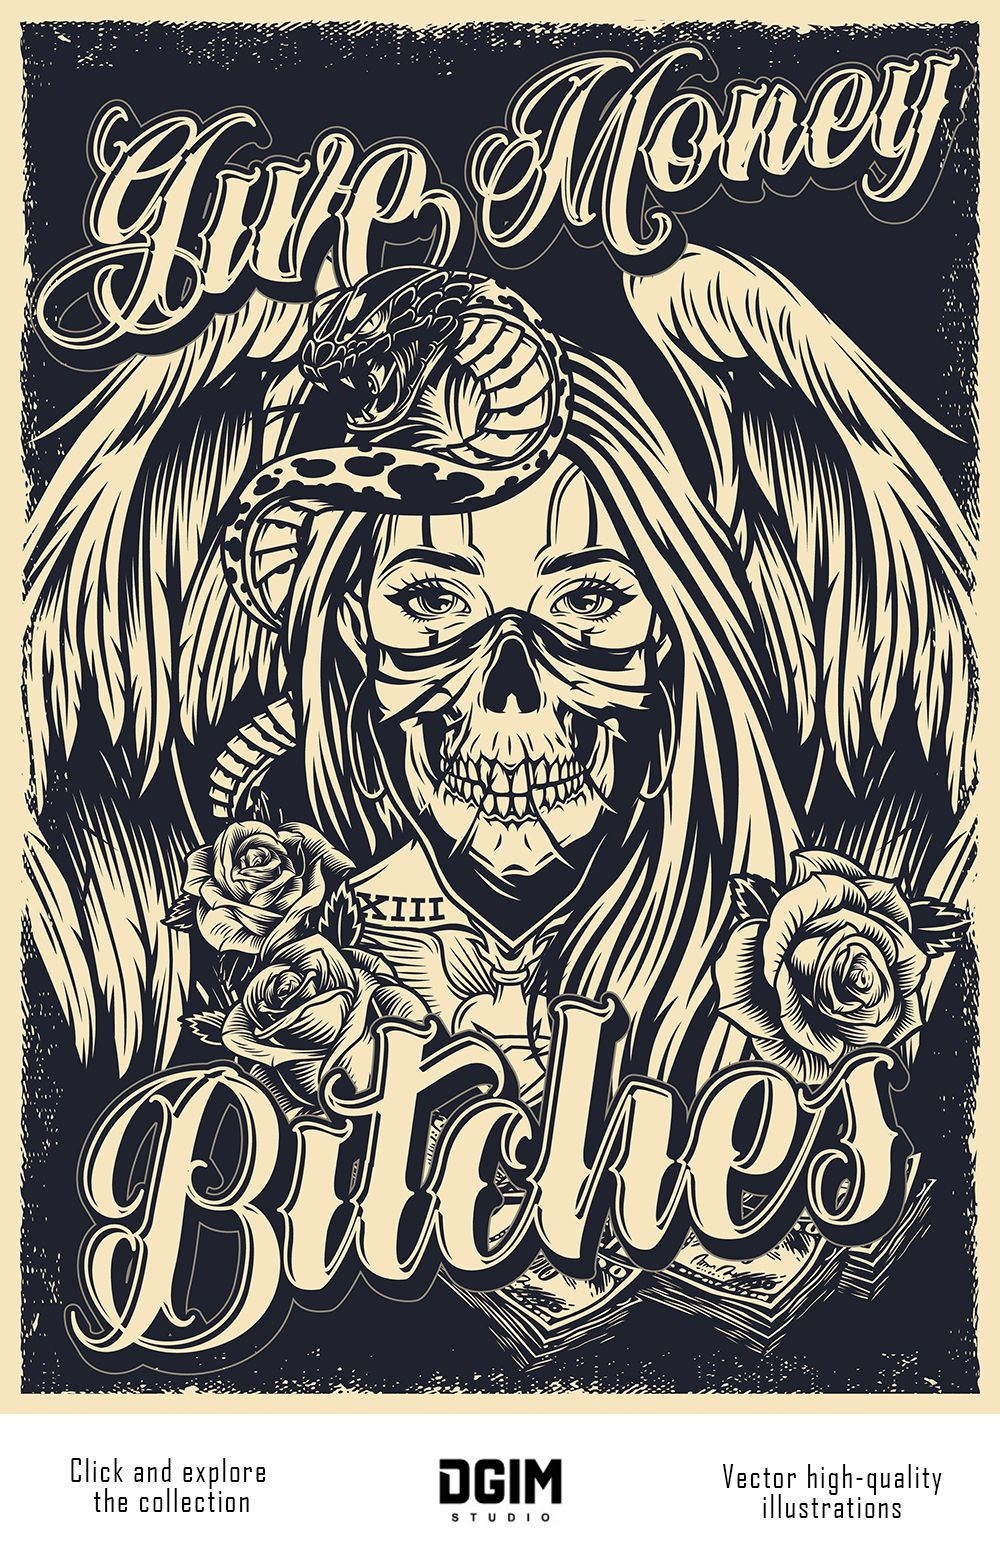 60 Chicano Vector Designs In 2020 Tattoo Posters Poster Design Vector Design